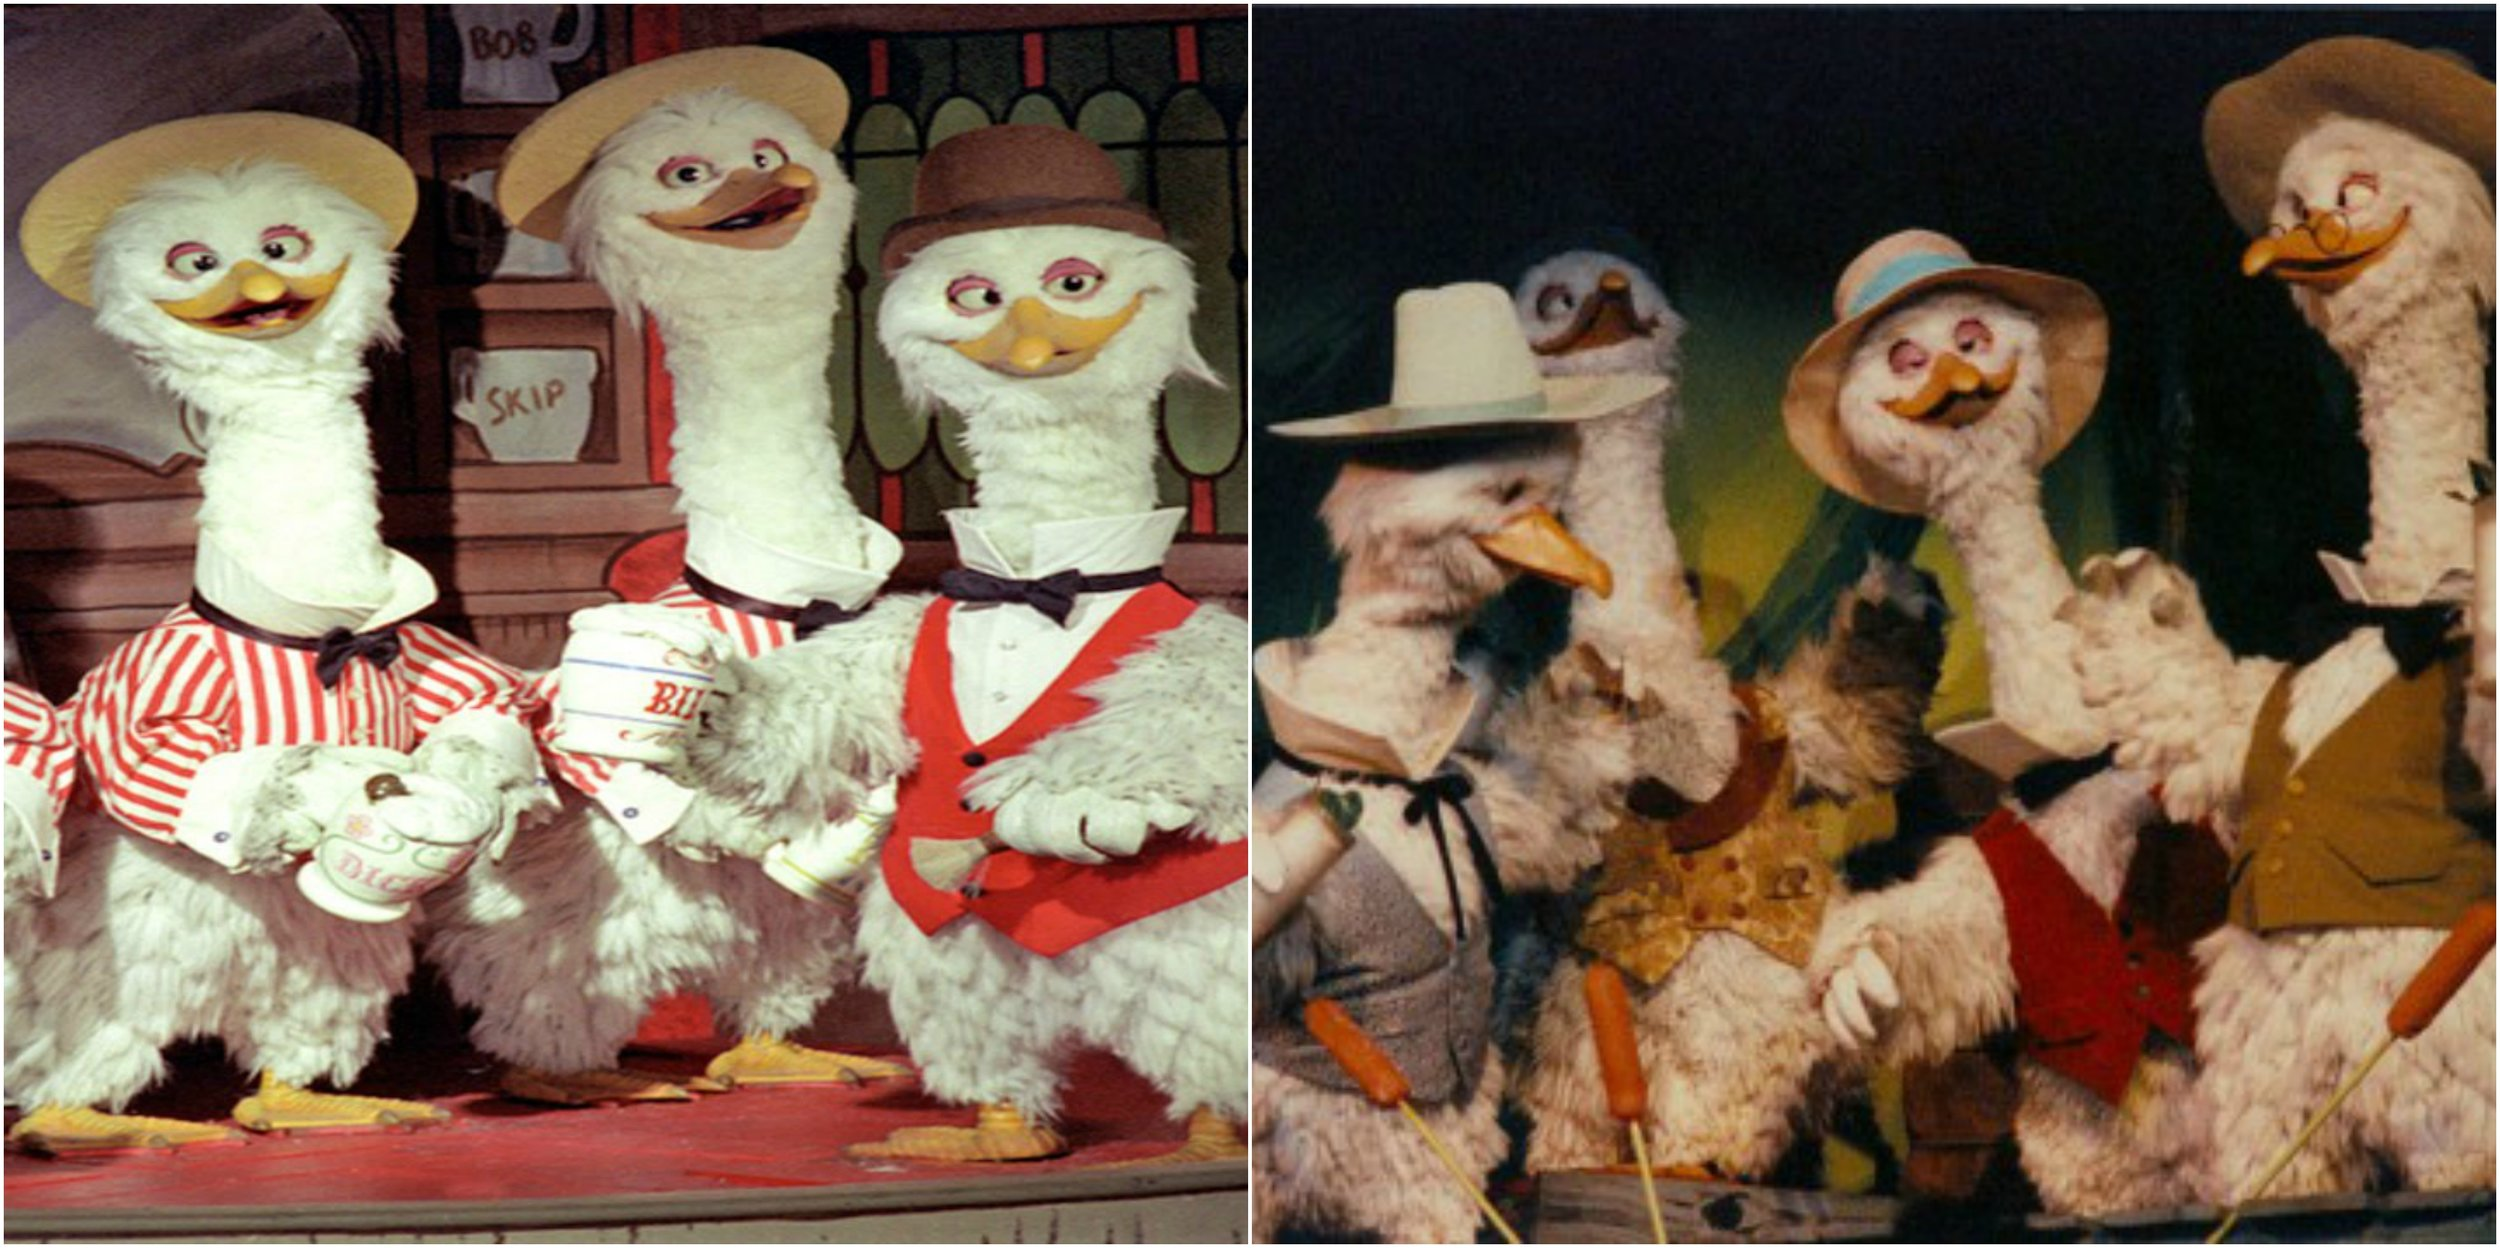 Figure 5: On the left are geese characters from Disneyland's shuttered America Sings attraction. On the right, those same animatronics now appear in Disneyland's Splash Mountain.